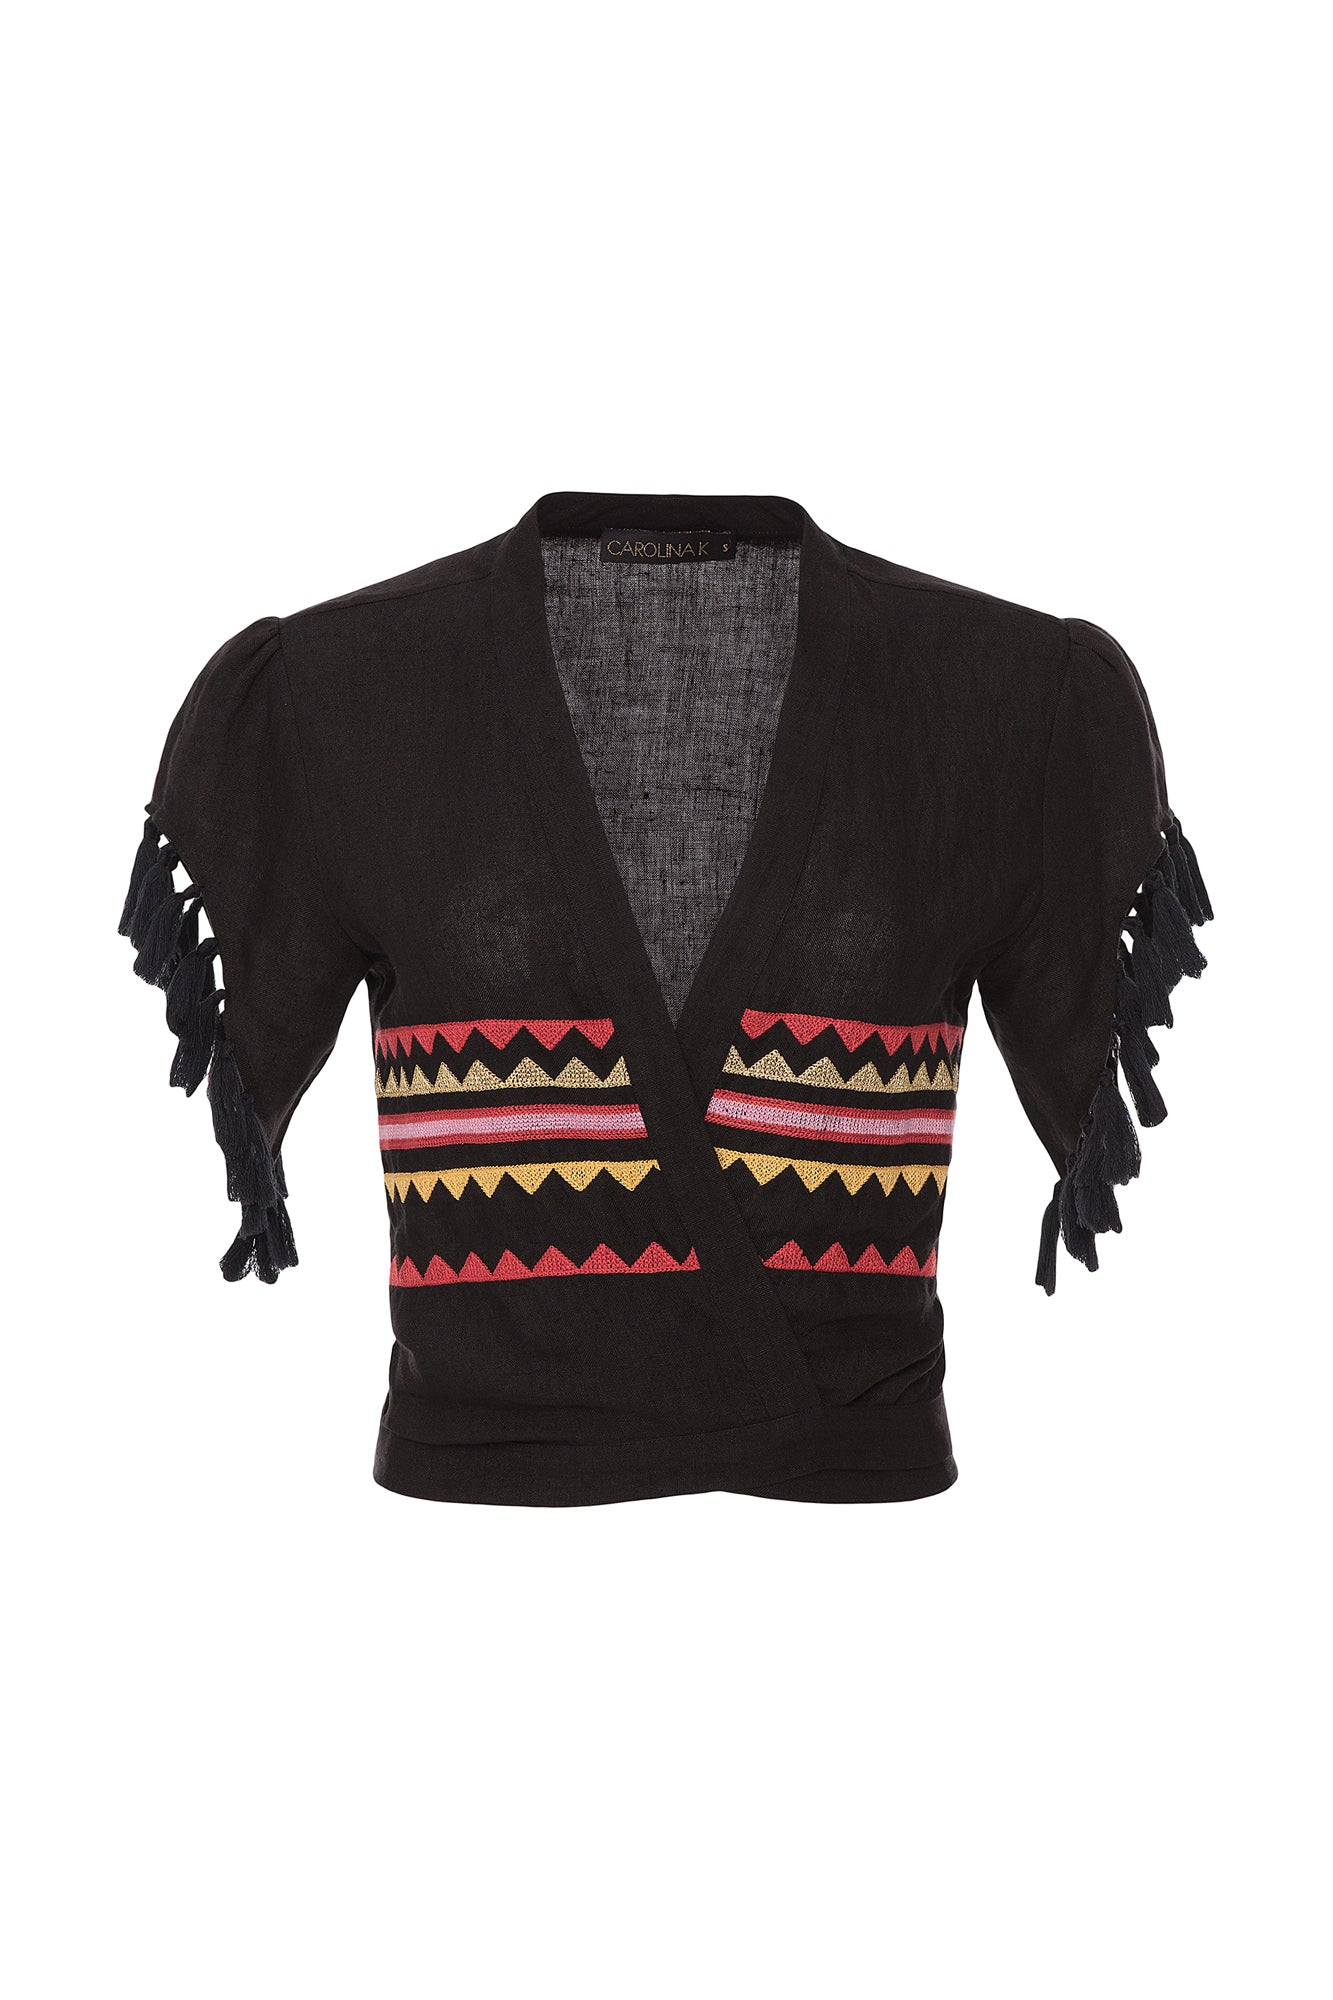 Carolina K Dani Top Black Triangles